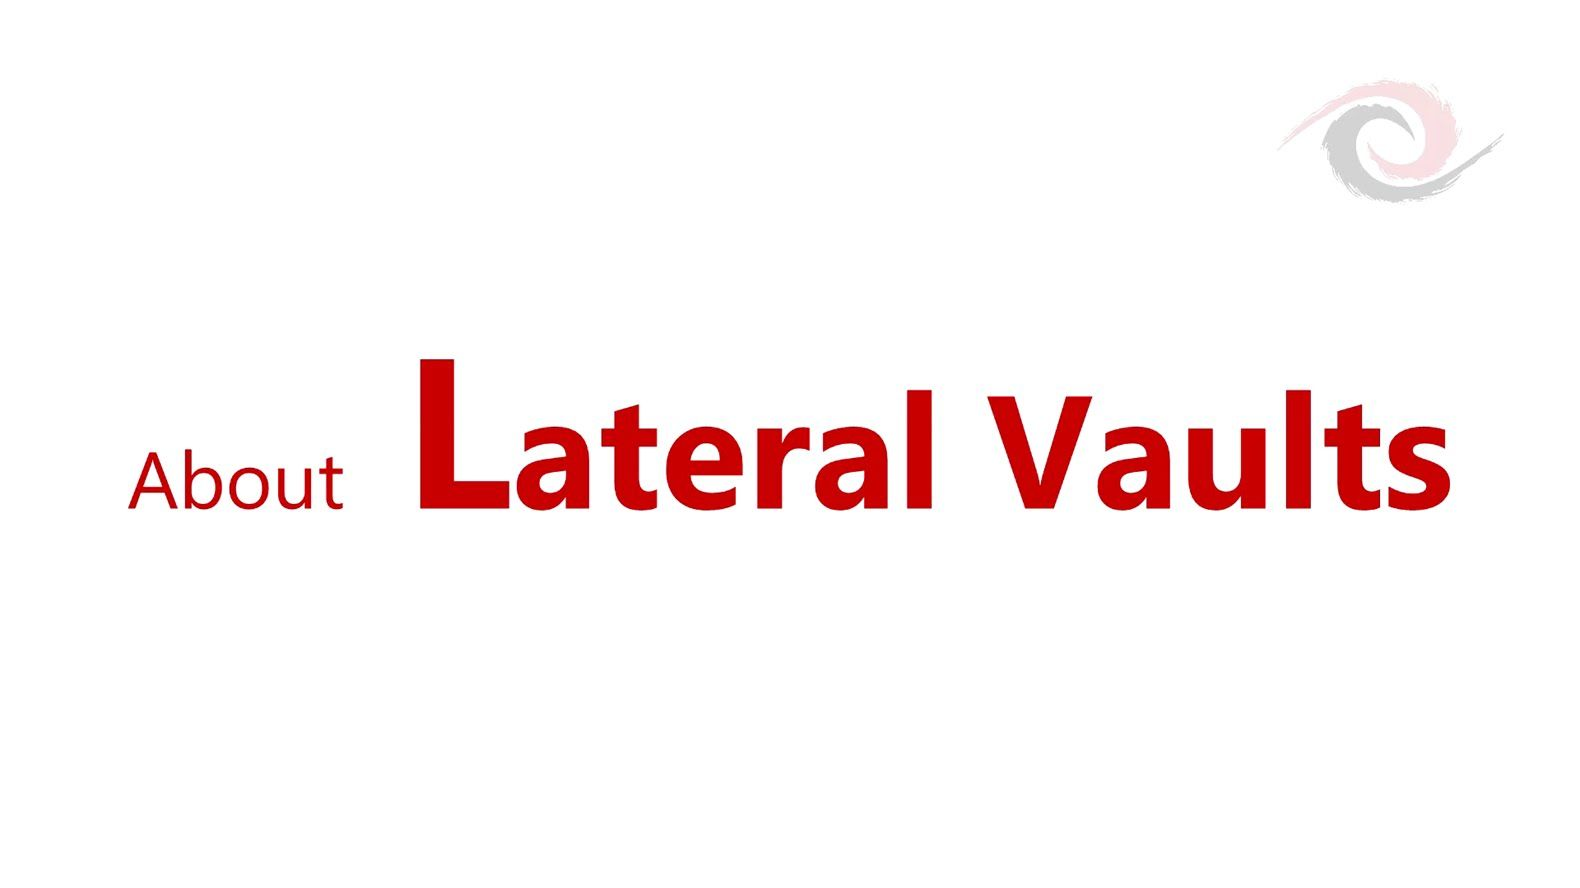 About . Lateral Vaults (레터럴 볼트에 대하여)